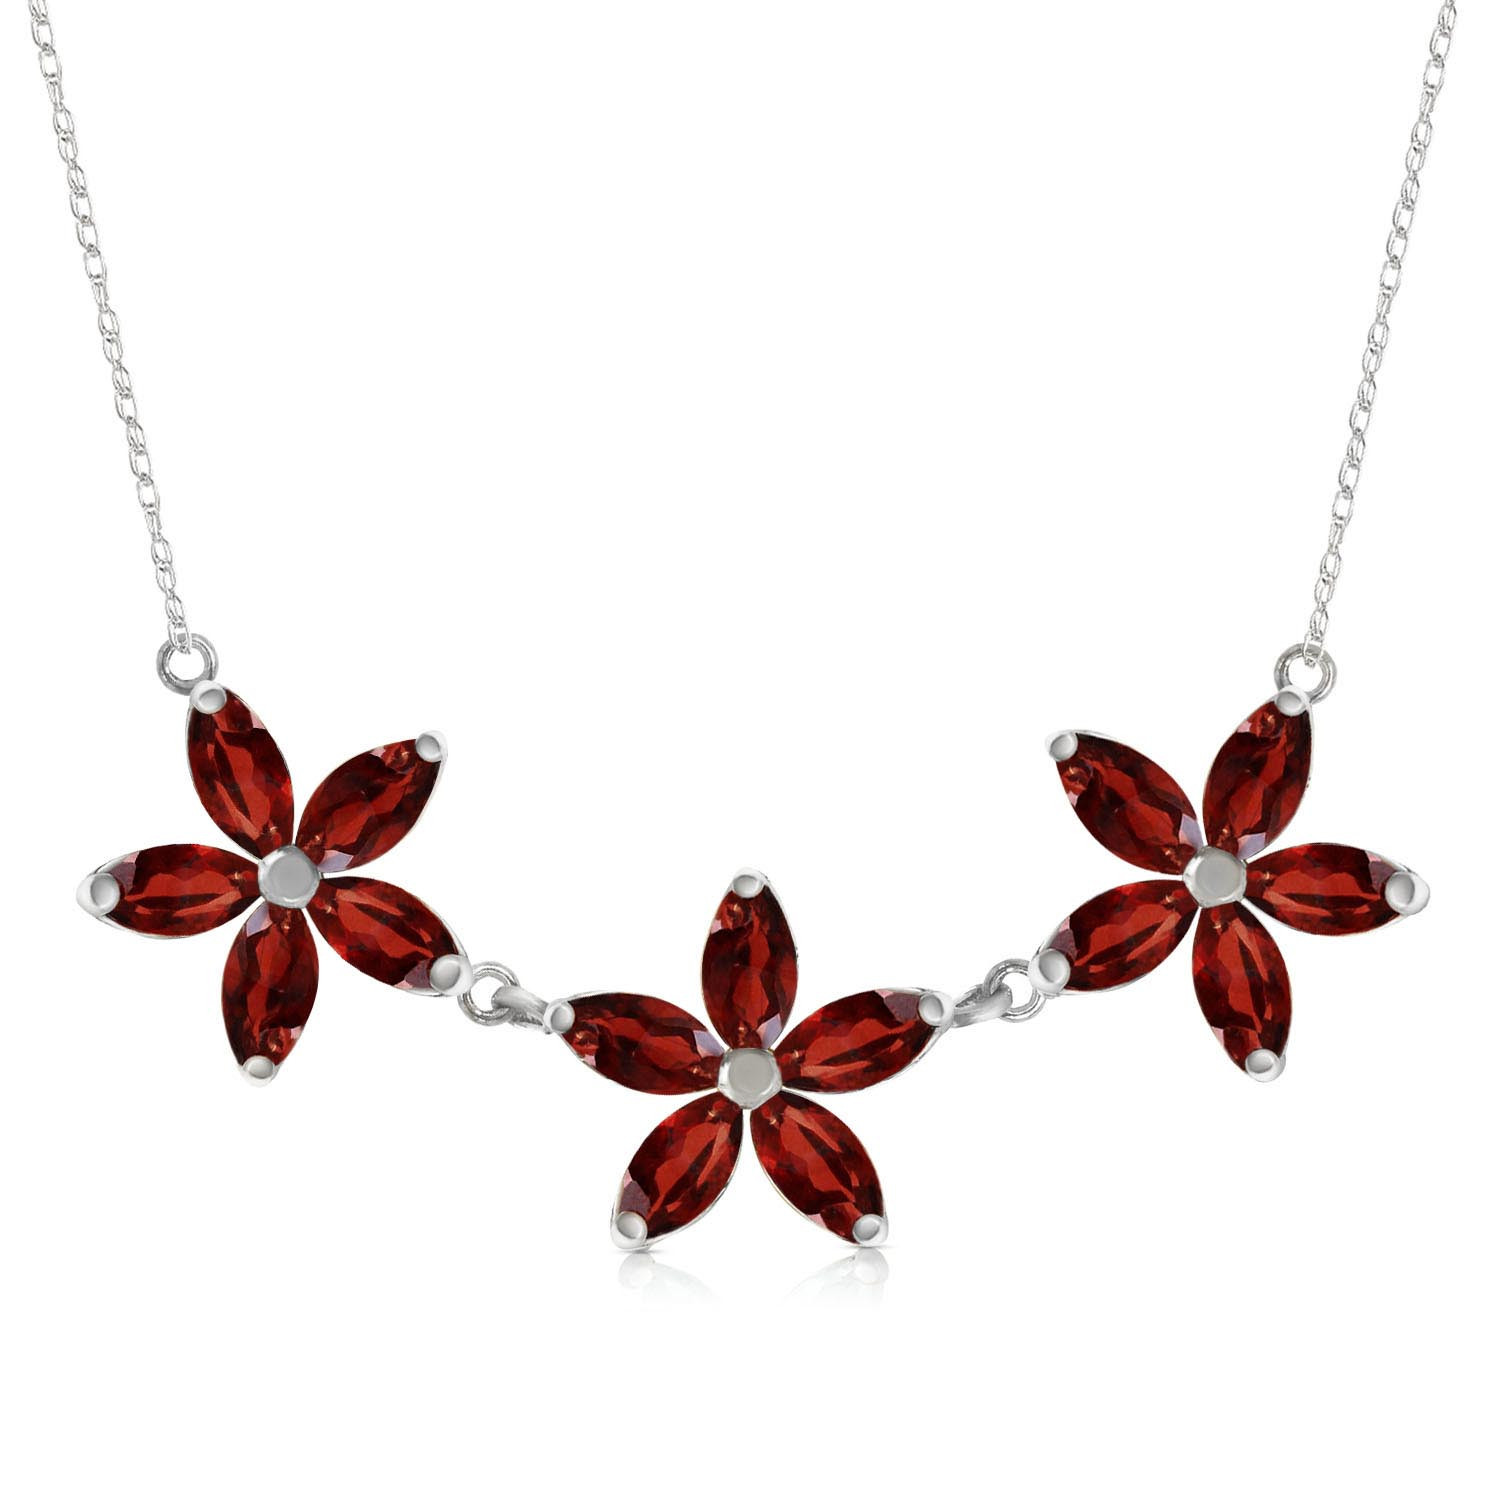 Marquise Cut Garnet Pendant Necklace 4.2 ctw in 9ct White Gold